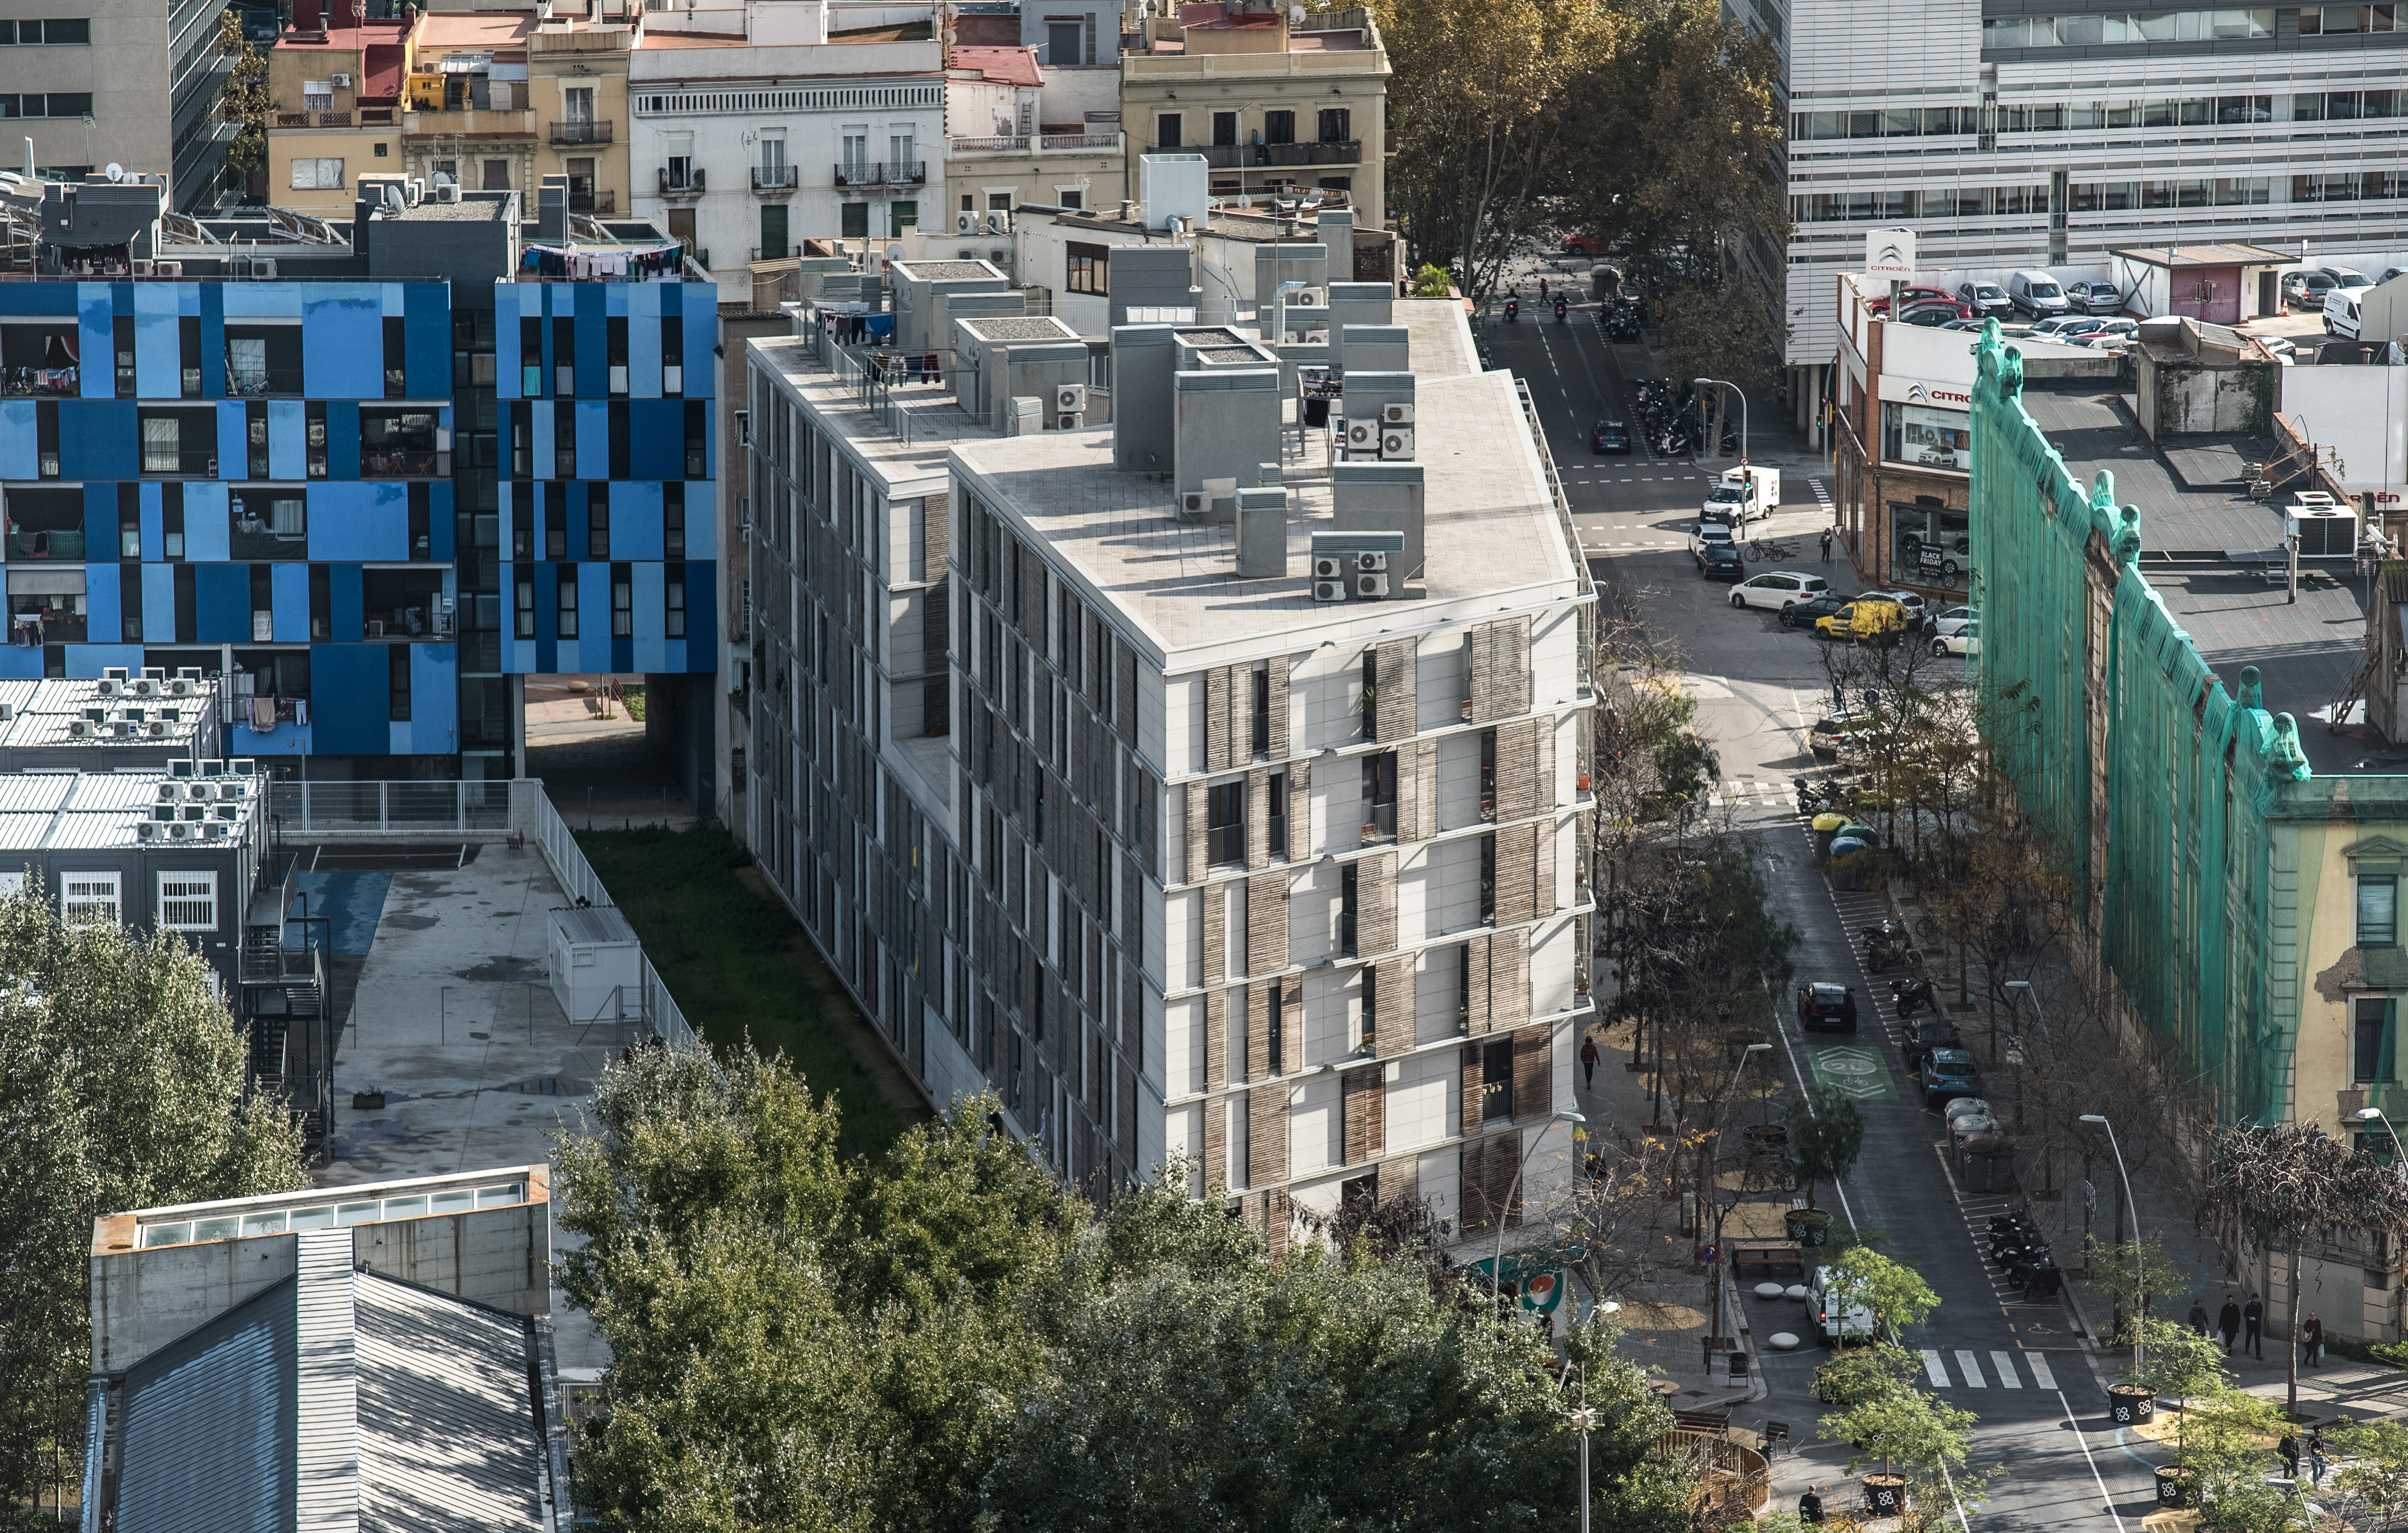 95 PUBLIC HOUSING IN C/ ROC BORONAT 89, BARCELONA